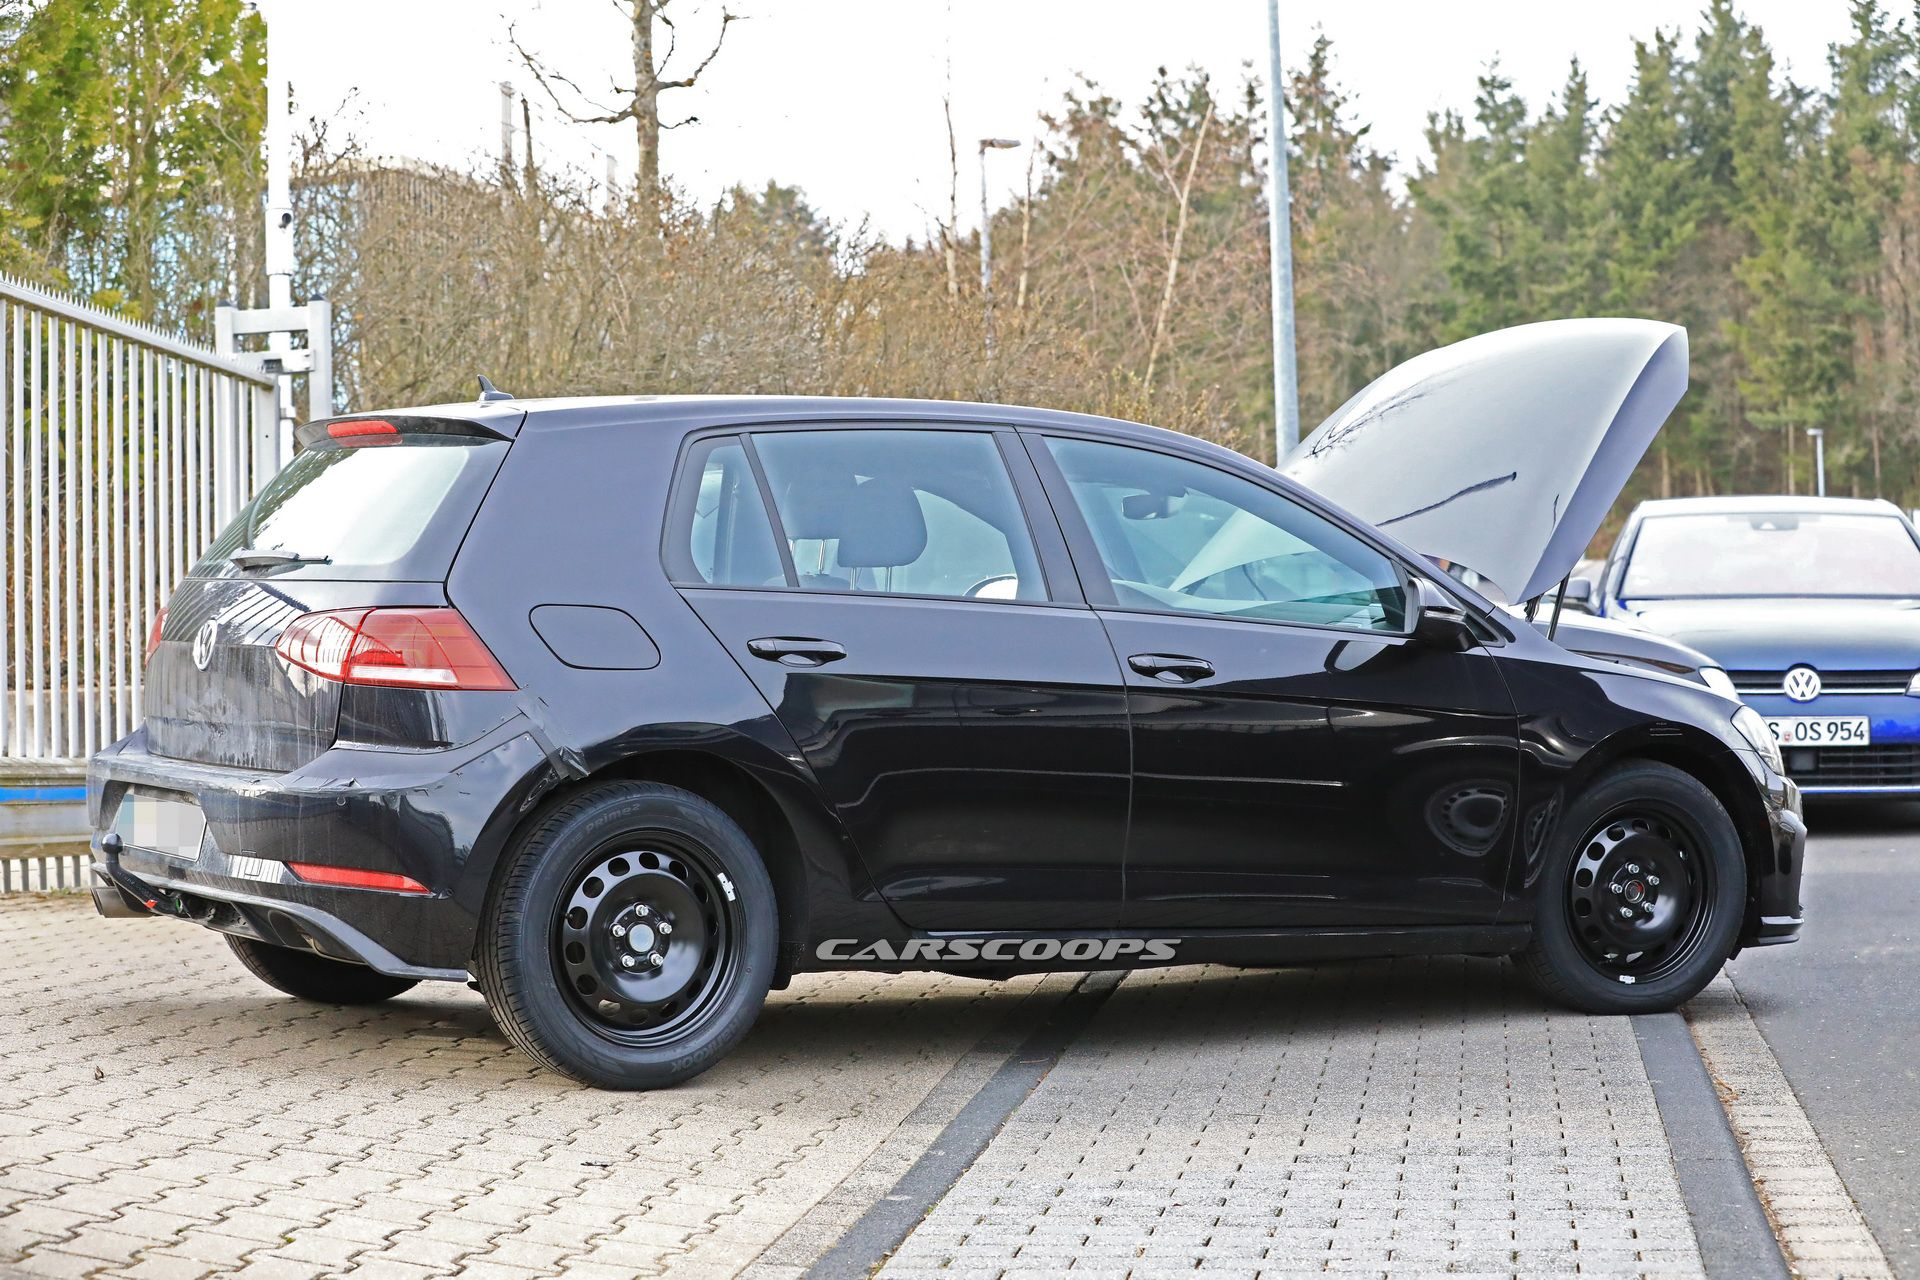 vw-golf-8-test-mule-spy-10-1.jpg